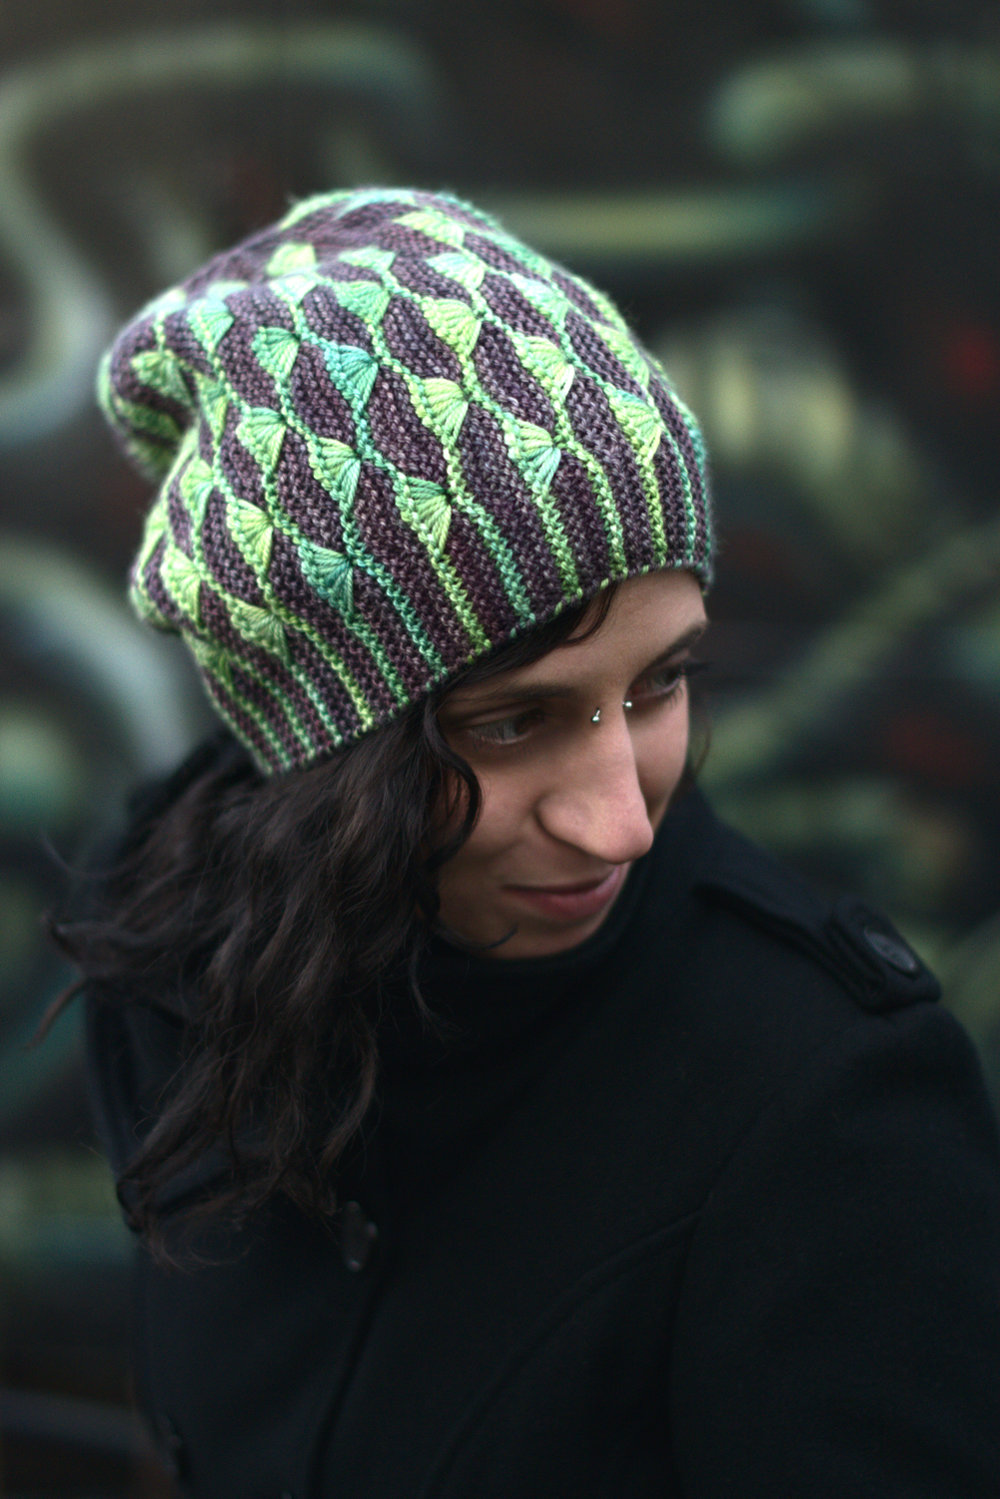 Diponaea reversible sideways knit slouchy hat for dk hand knitting yarn